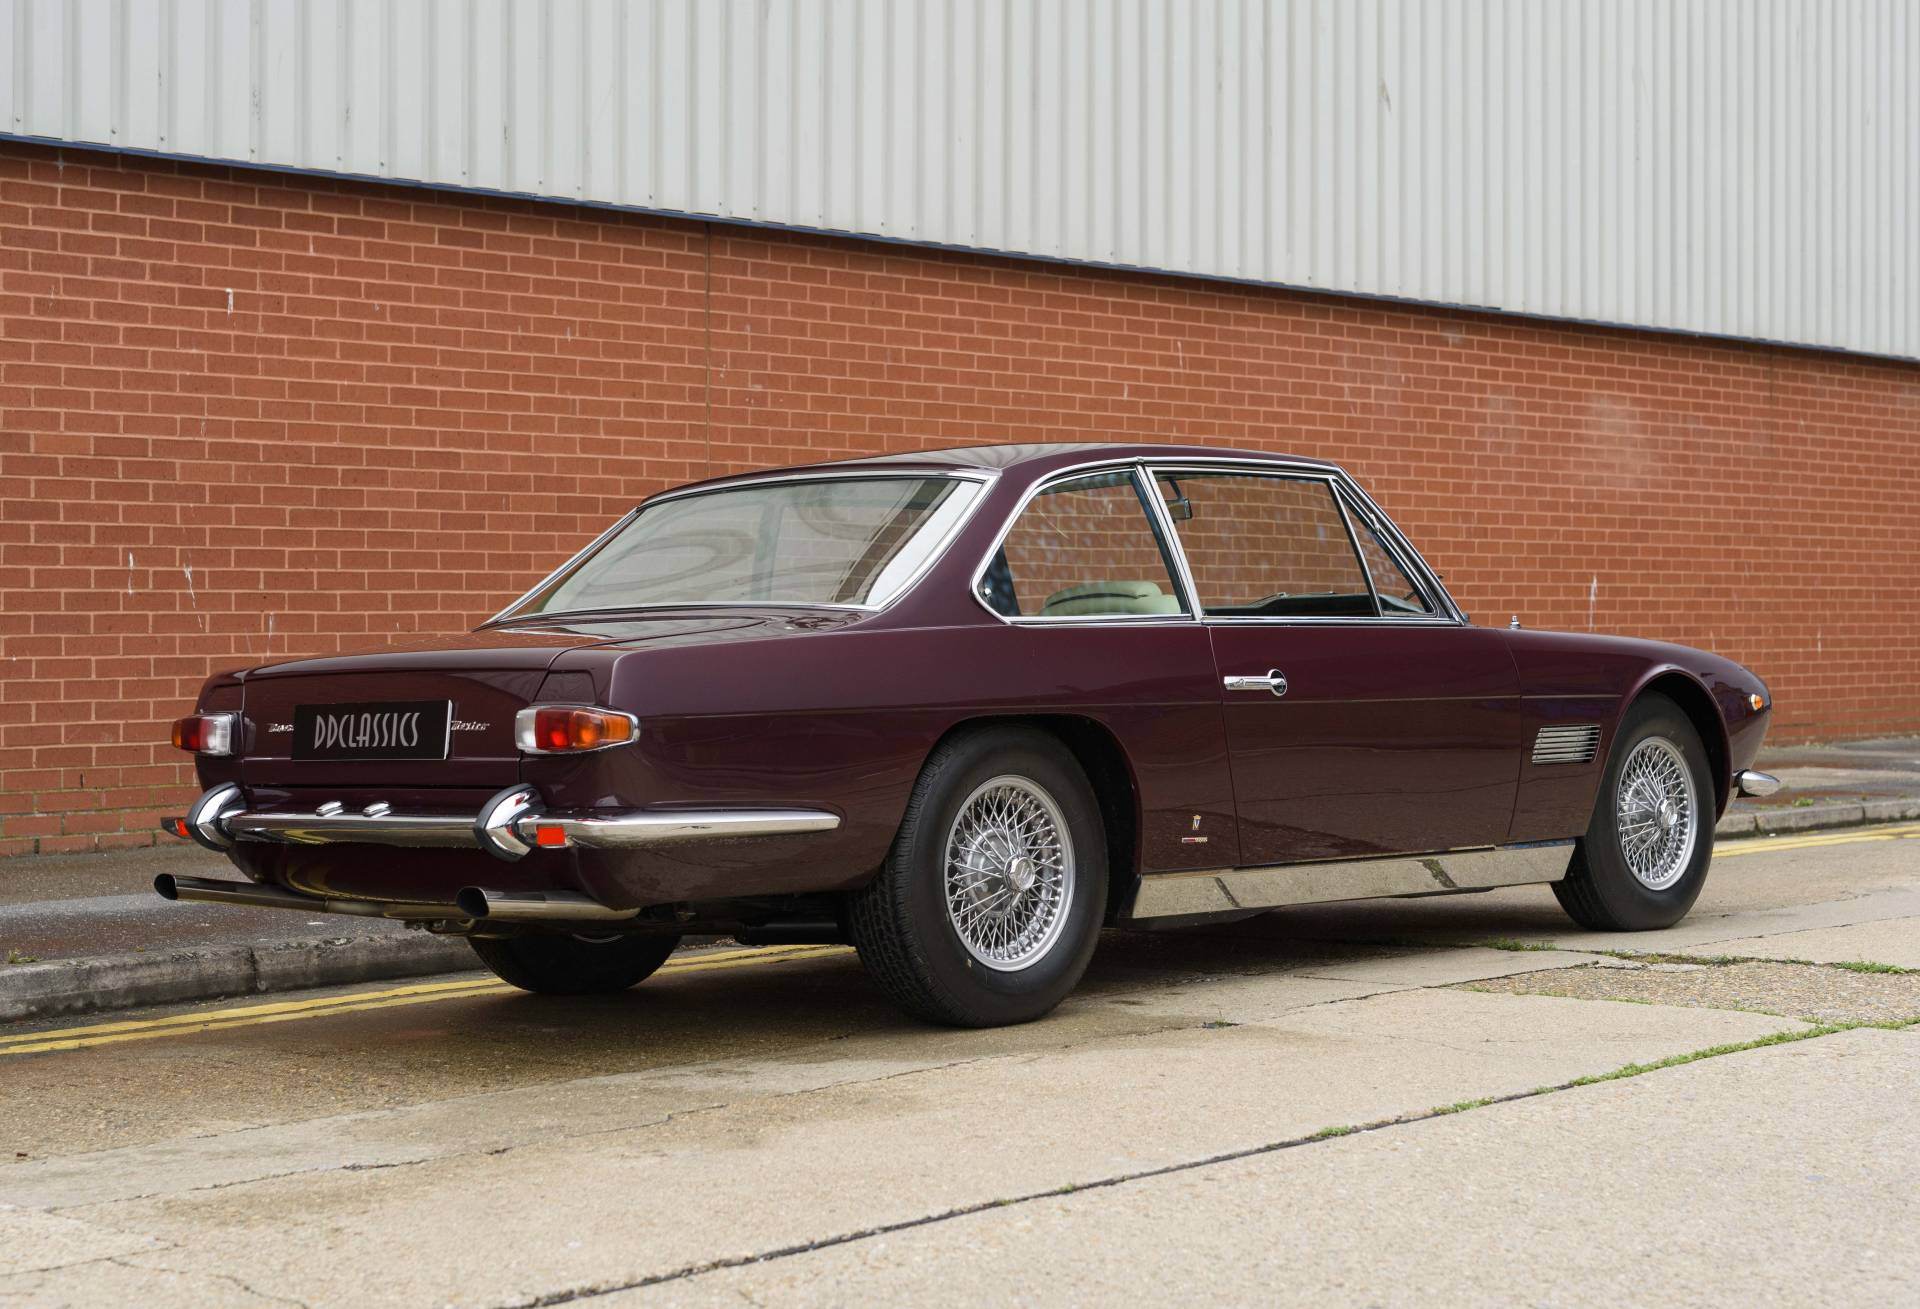 For Sale: Maserati Mexico 4700 (1970) offered for AUD 207,281